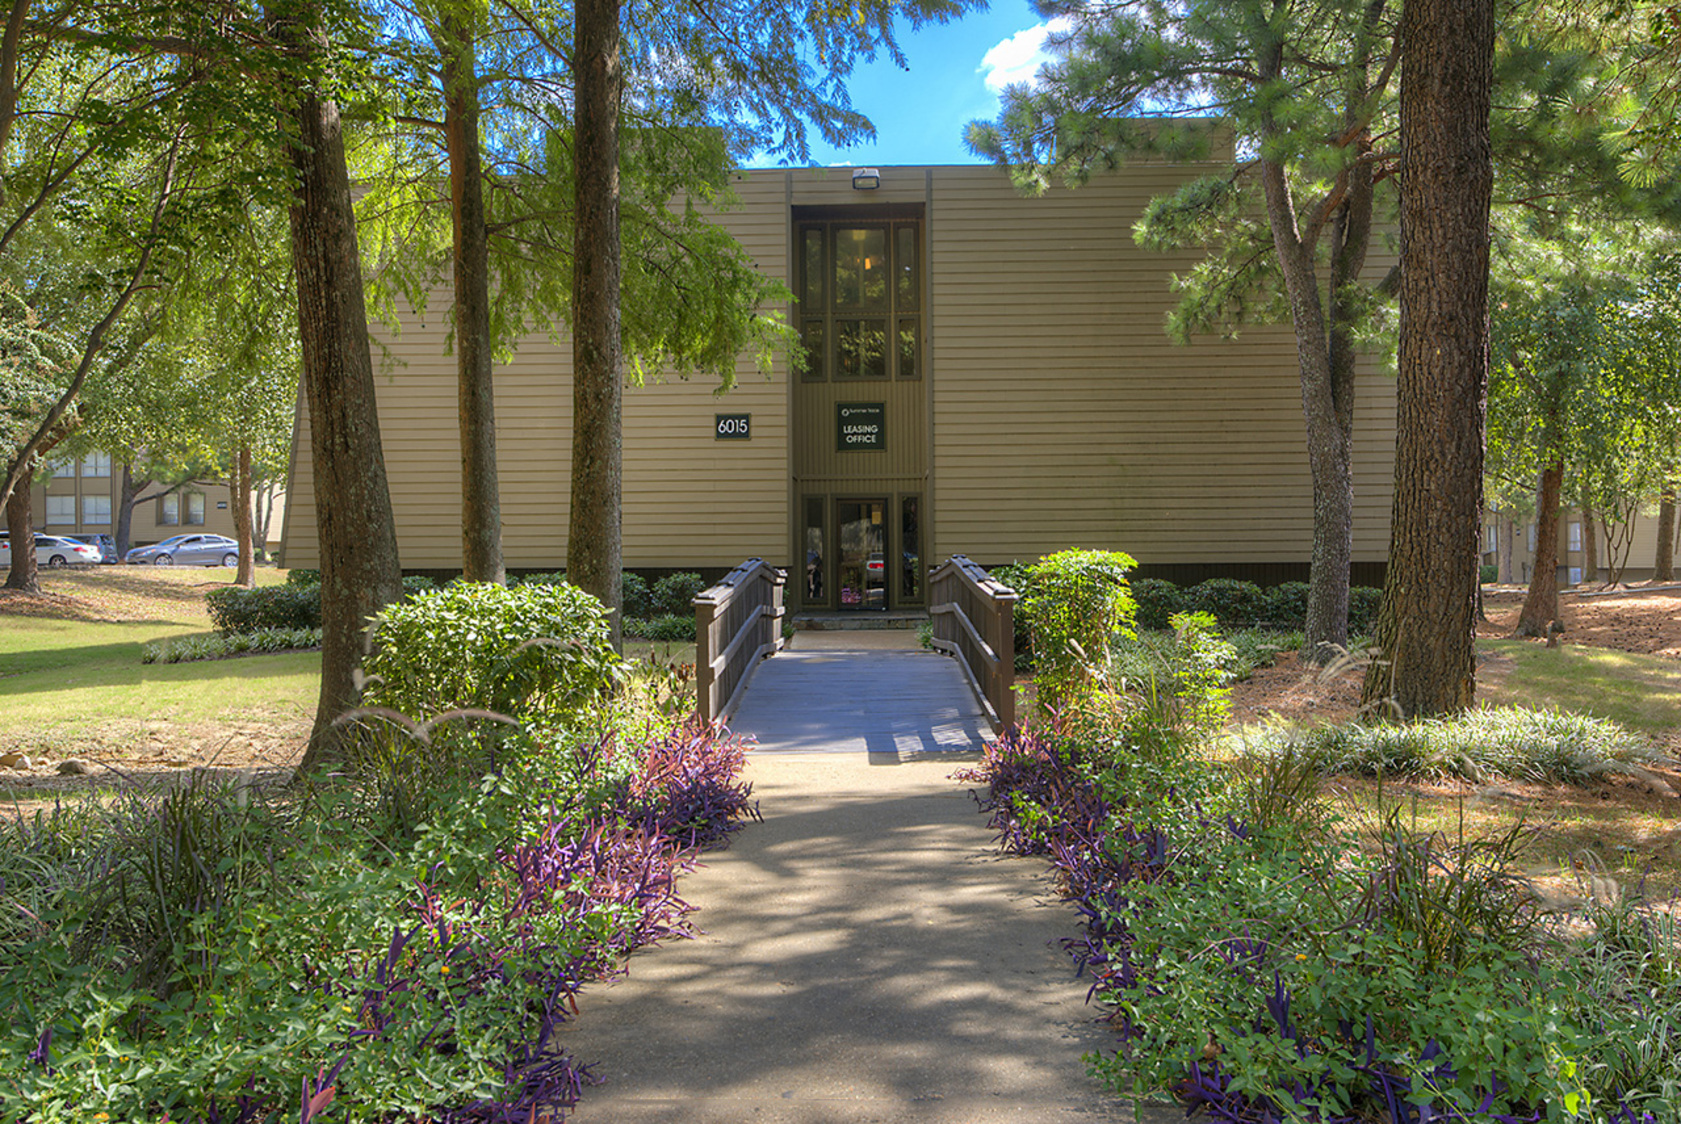 Summer Trace Apartments